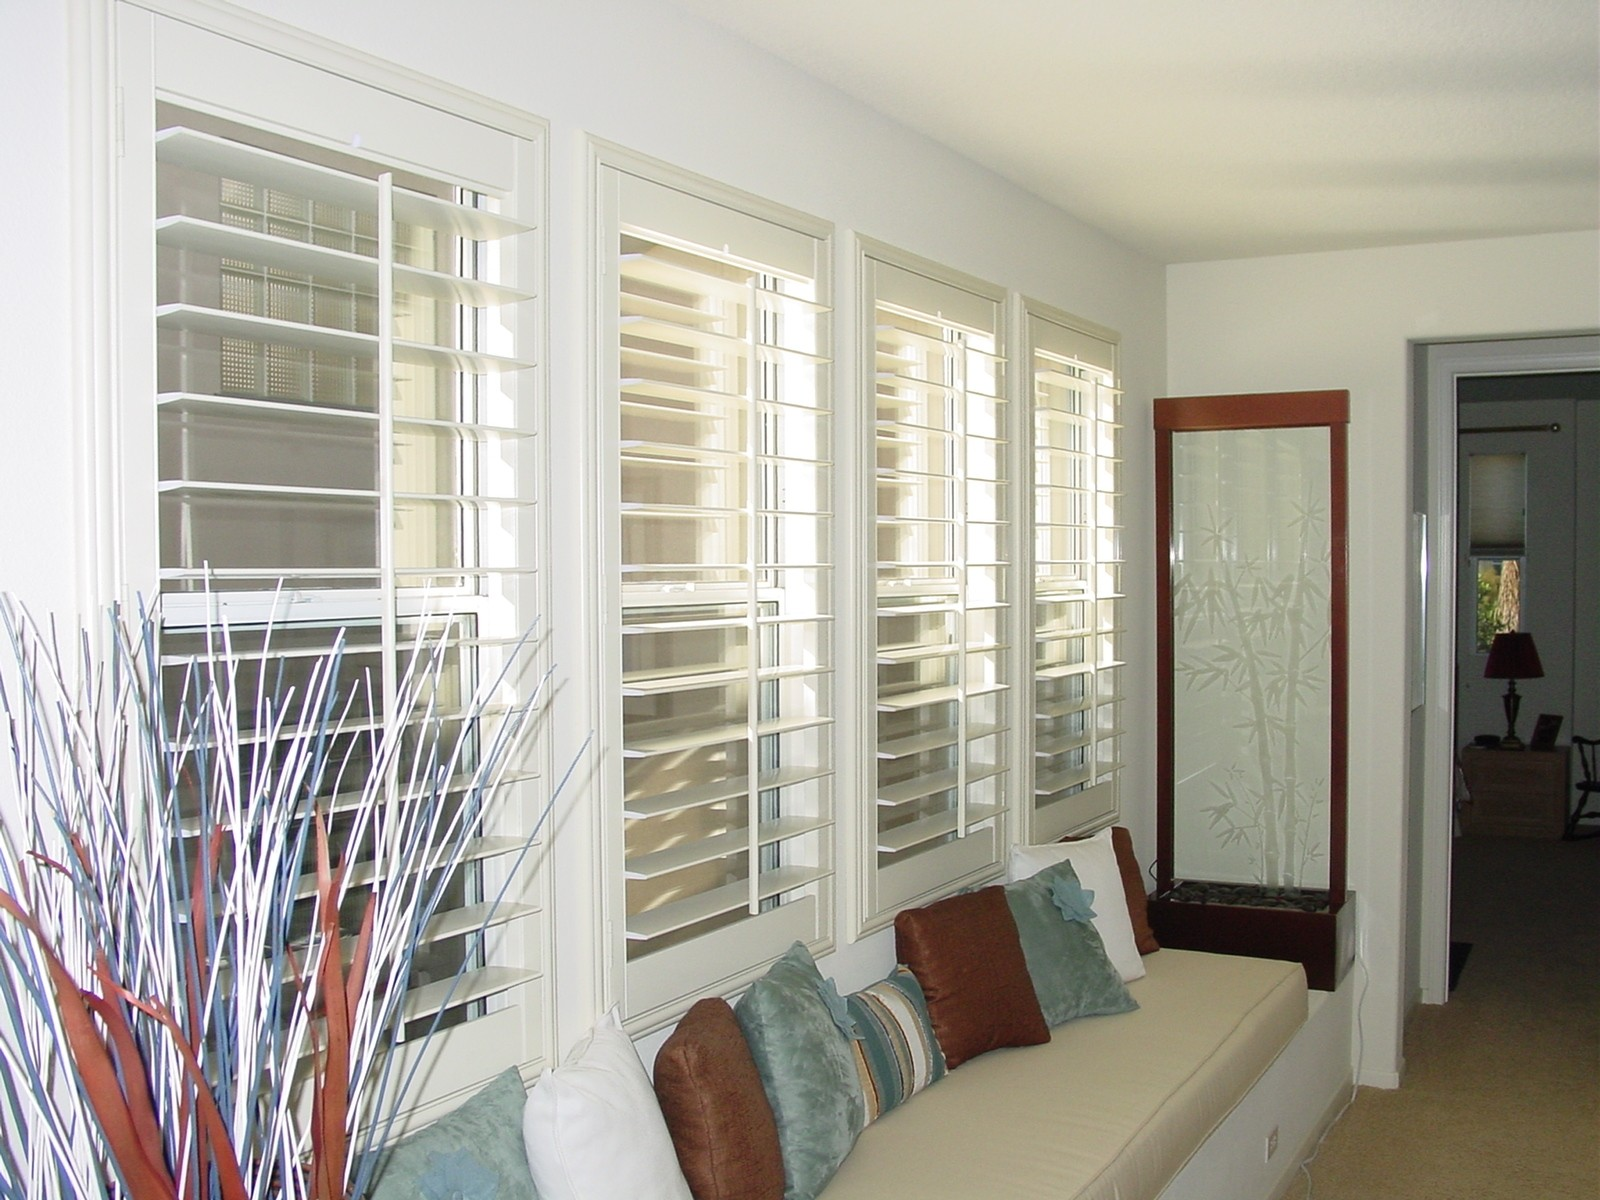 window blinds cost basement the ideas